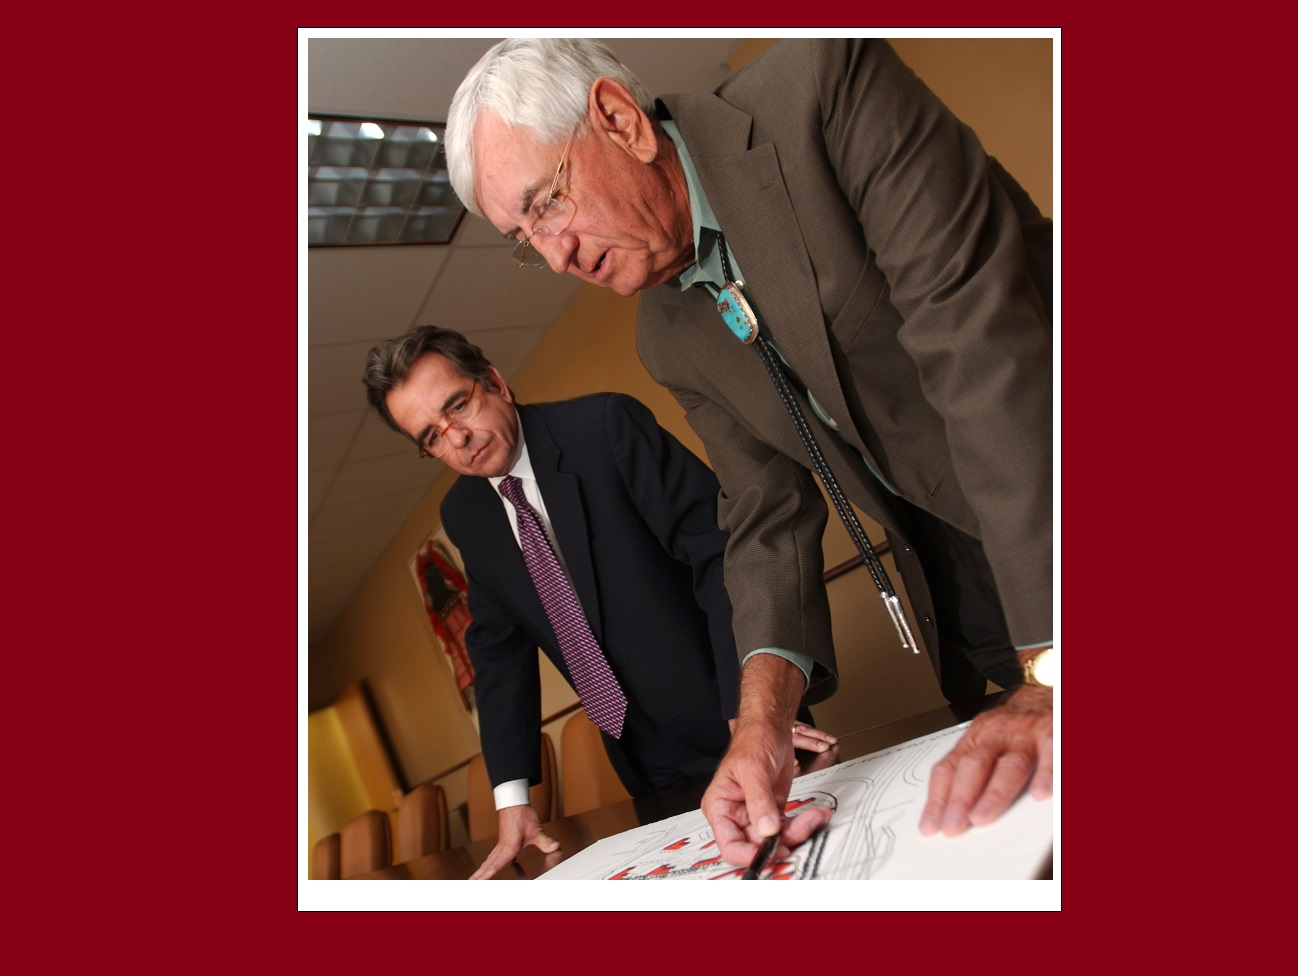 Kevin Boberg, left, and Garrey Carruthers look over an architectural rendering of the new Arrowhead Research Park in 2007, when Carruthers was dean of NMSU's College of Business and Boberg was the college's Carruthers Chair in Economic Development. |   NMSU photo by Darren Phillips